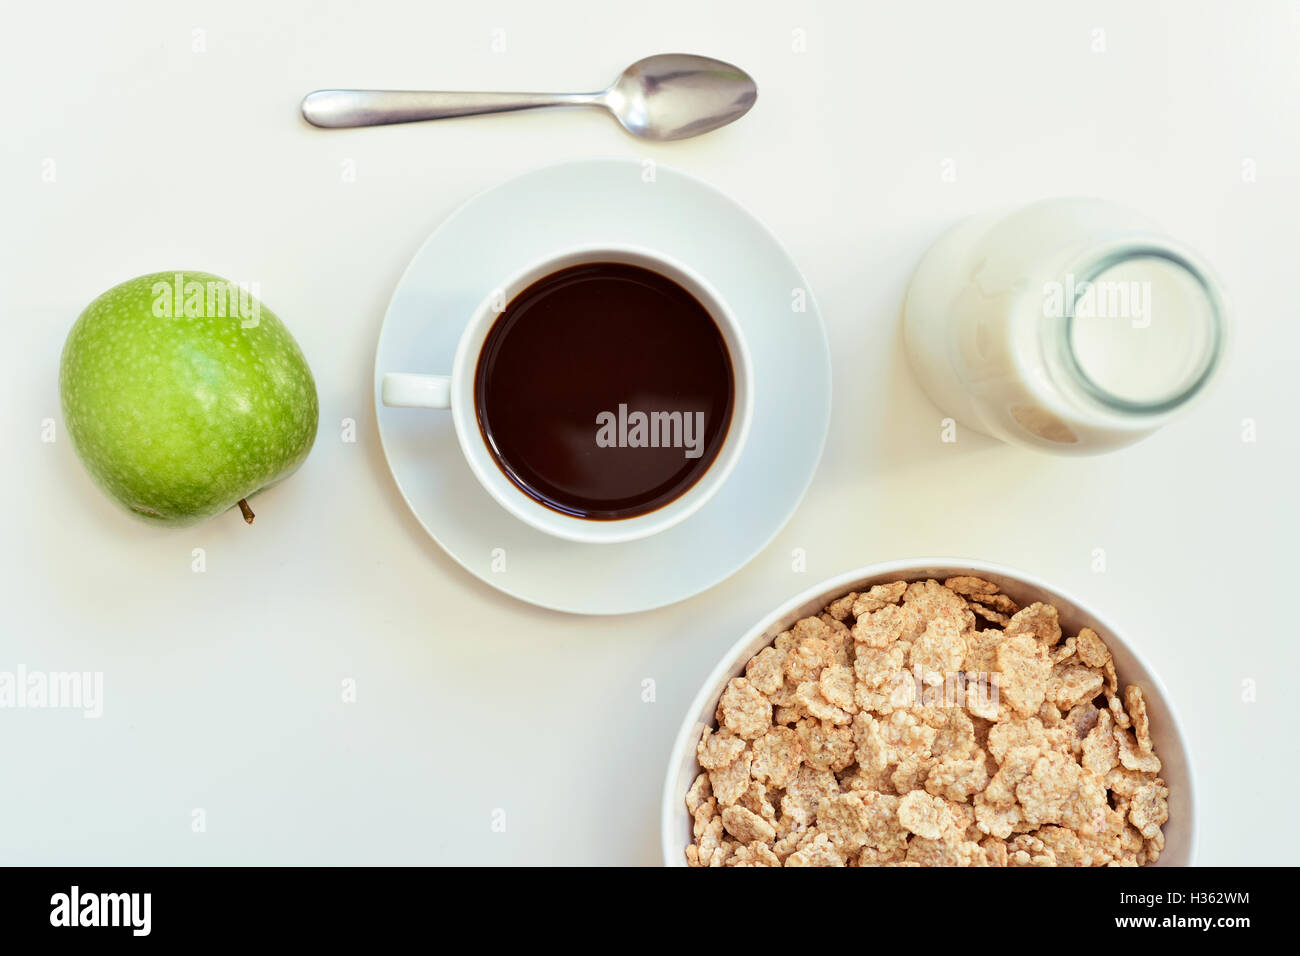 high-angle shot of a white table set for breakfast with a green apple, a cup of coffee and a bowl with cereals - Stock Image